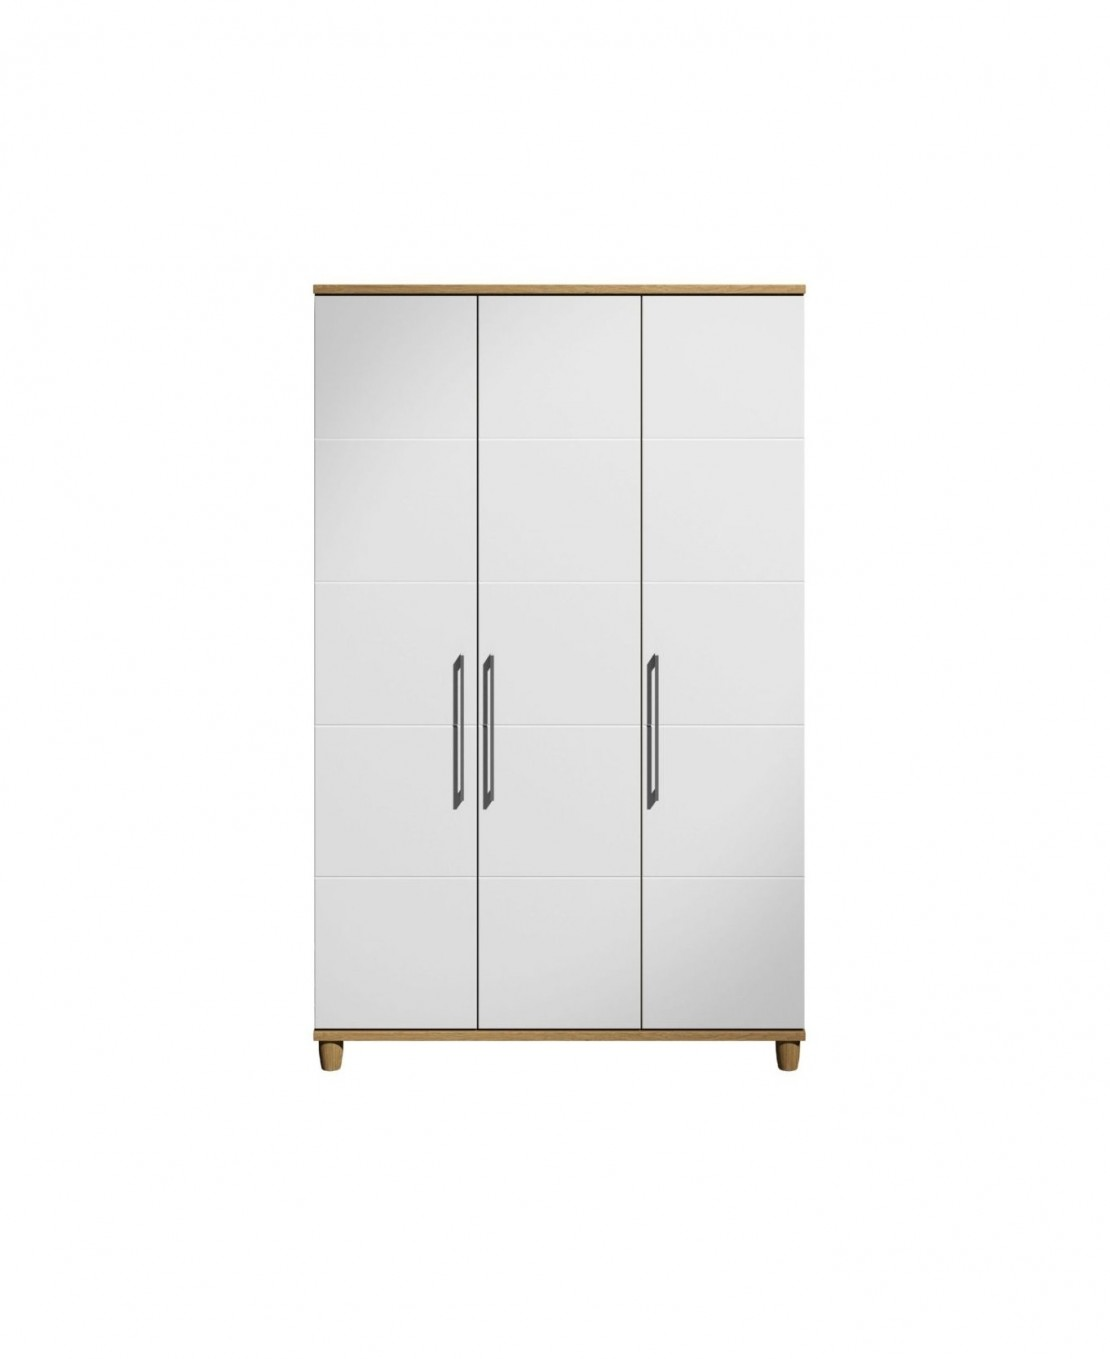 /_images/product-photos/kt-furniture-vardy-3-door-robe-white-a.jpg